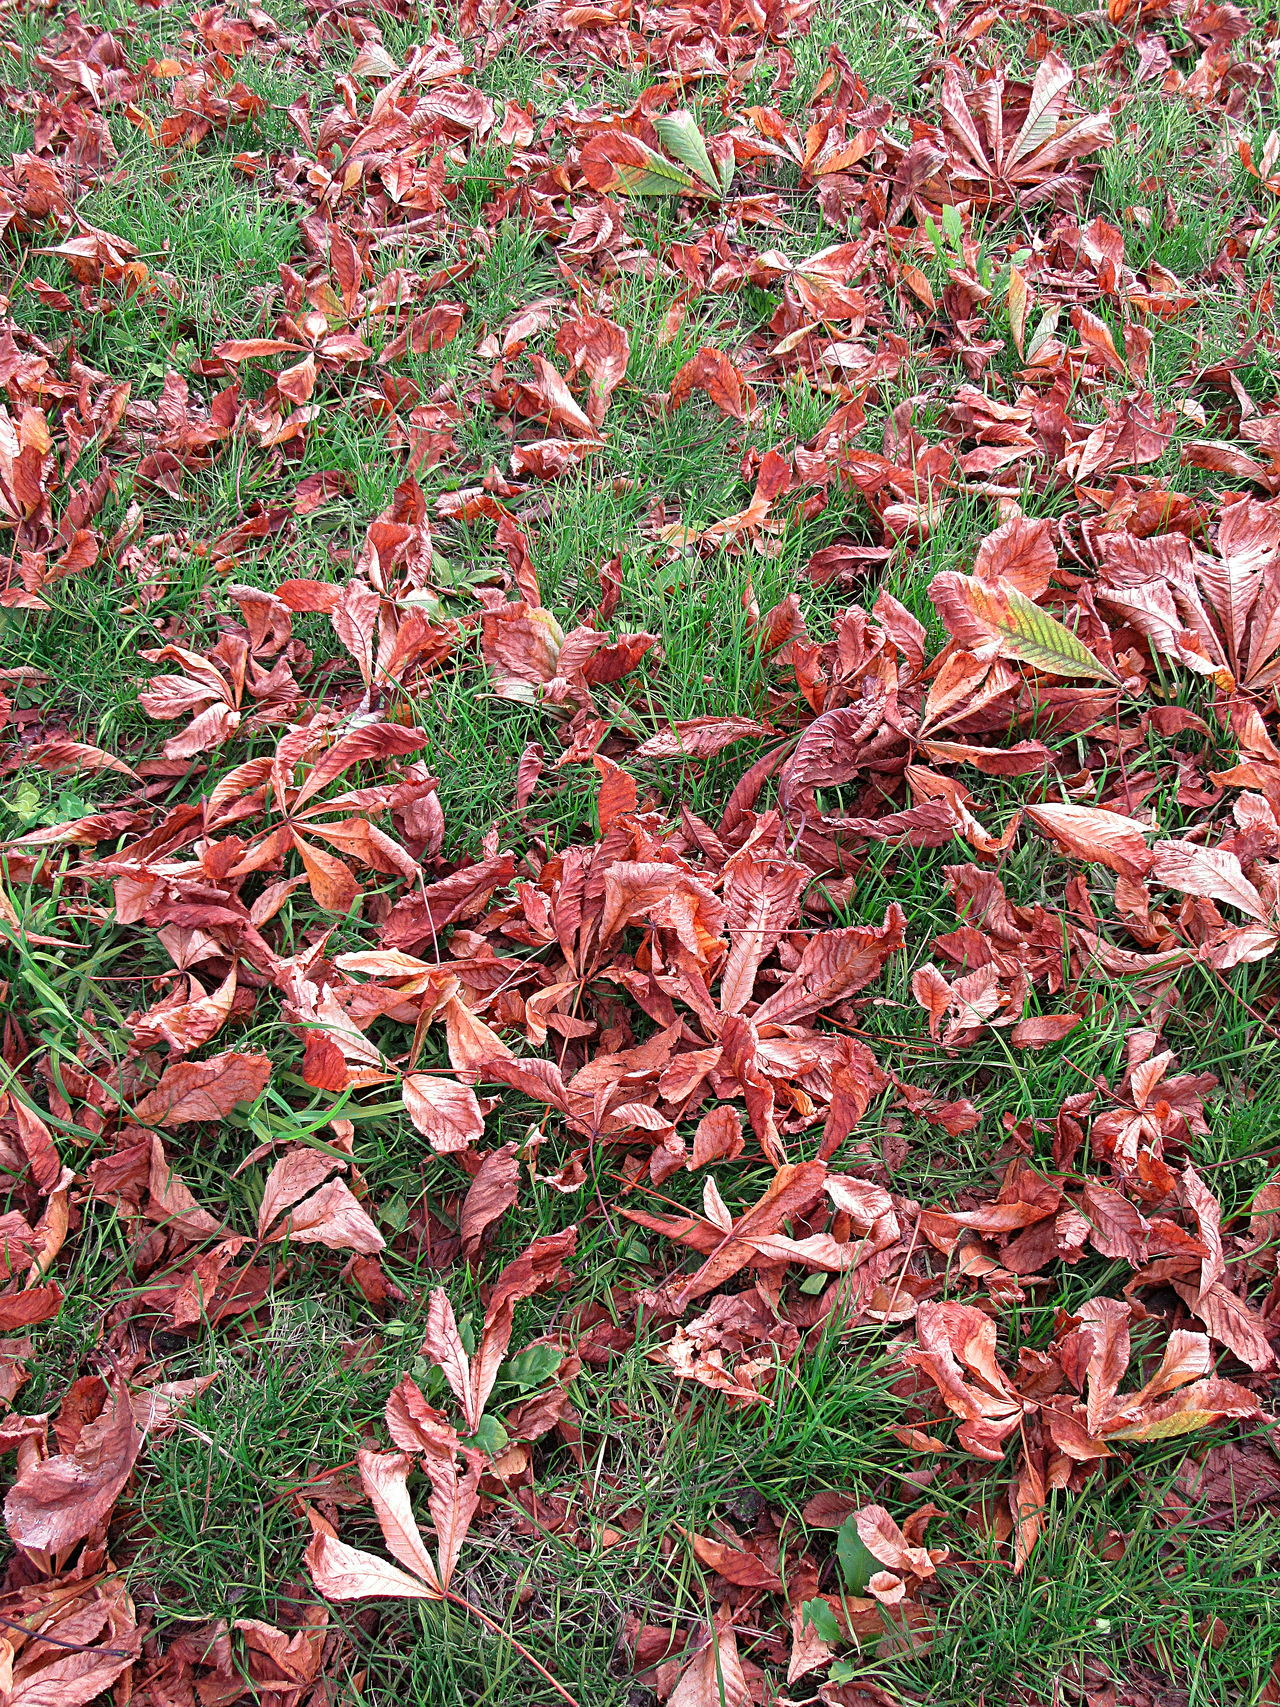 Dry brown leaves on green grass Autumn Backgrounds Beauty In Nature Brown Close-up Day Dry Dry Leaves Fall Freshness Full Frame Grass Green Growth Leaves Nature No People October Outdoors Red